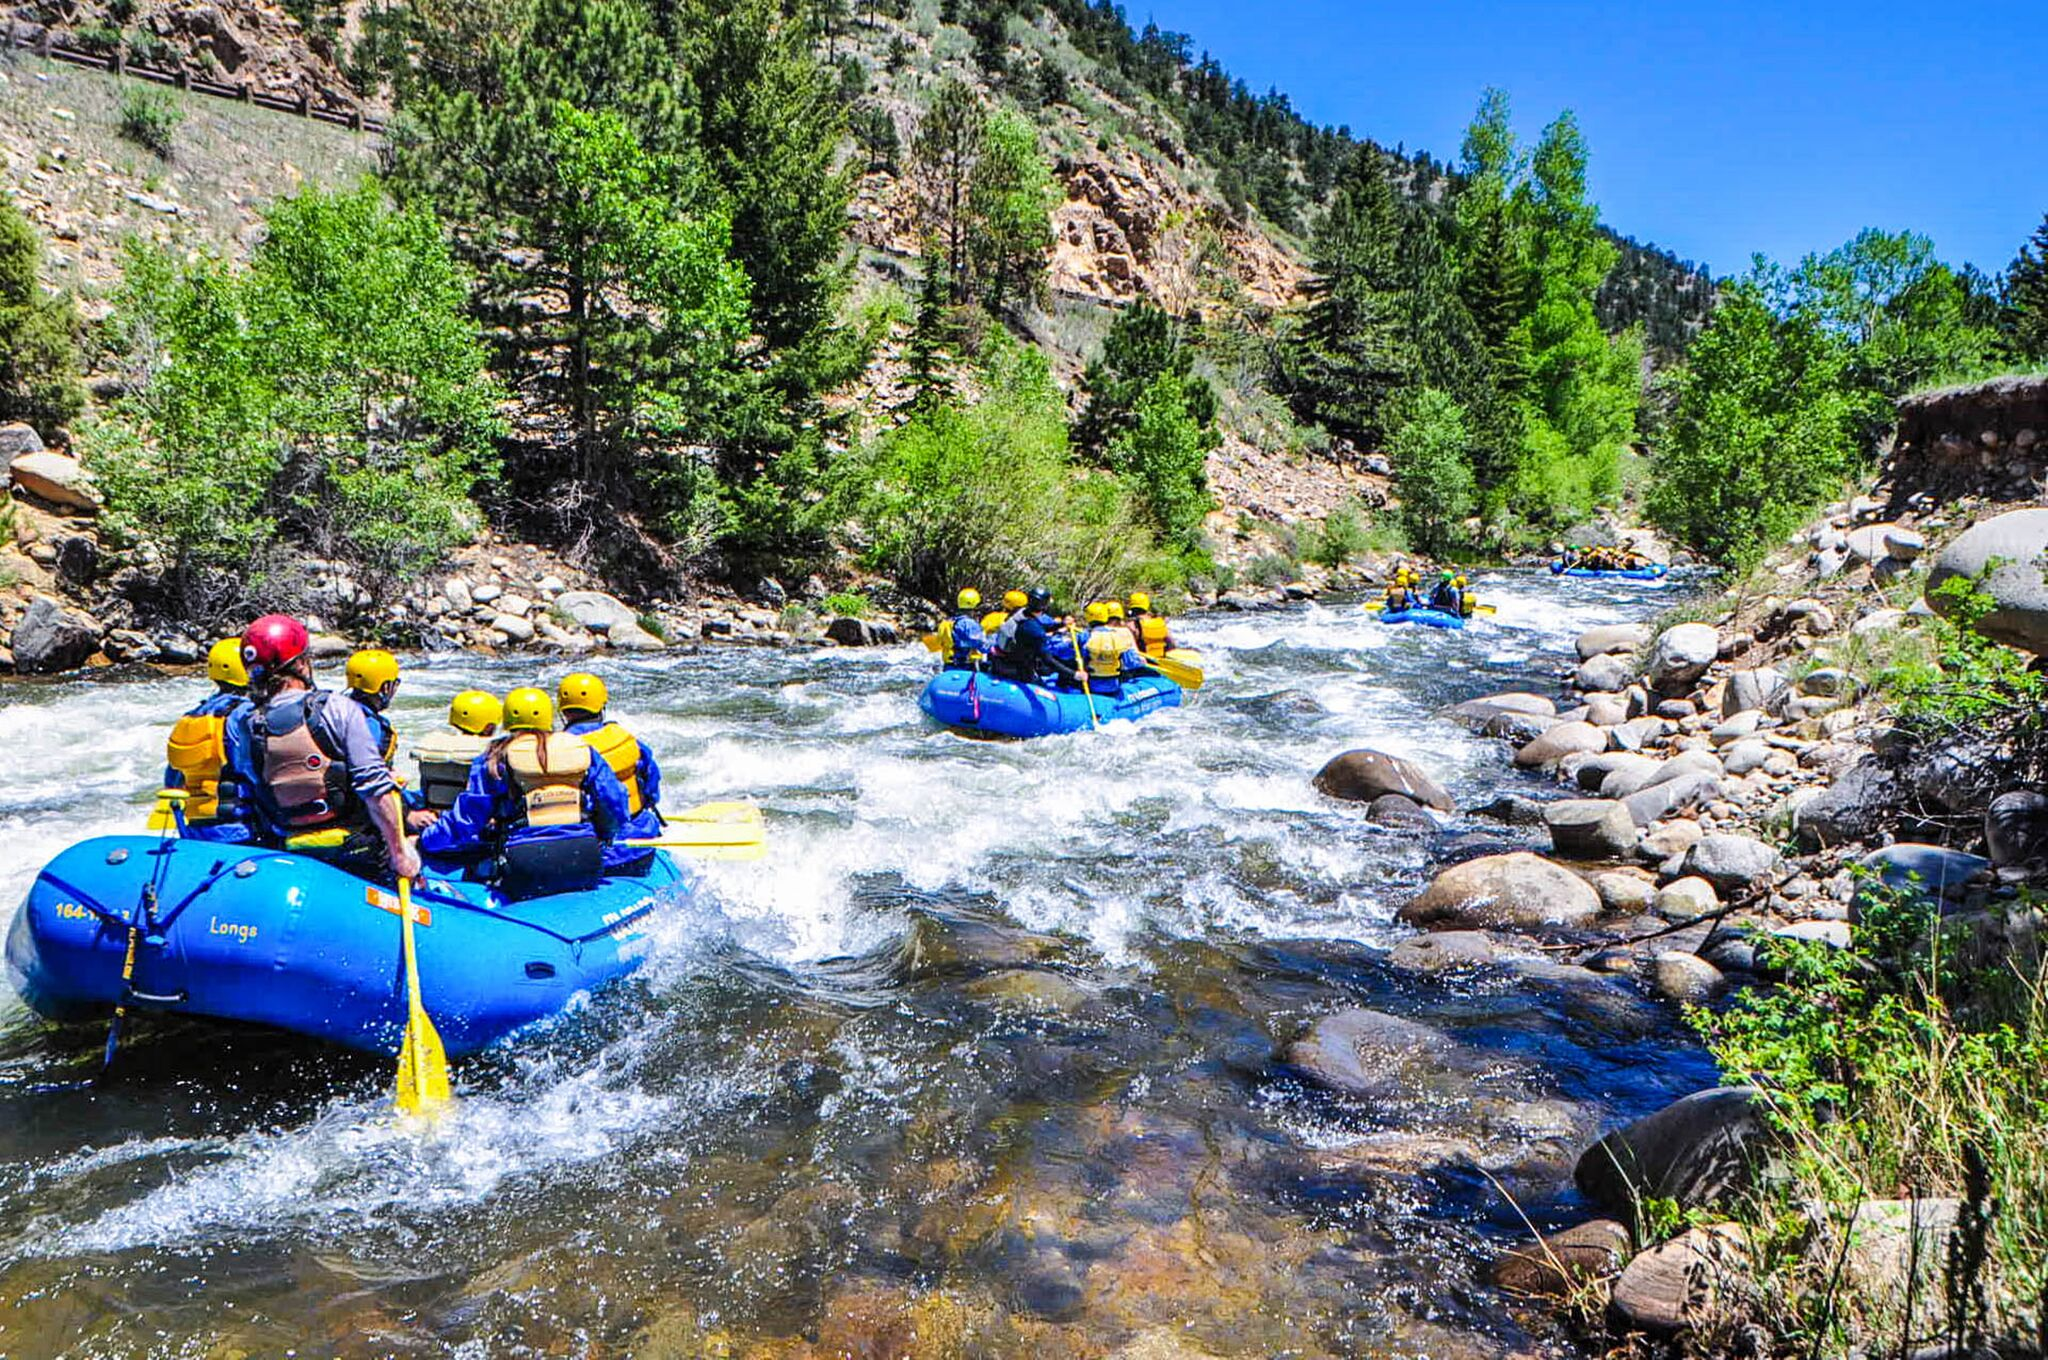 two groups of people rafting down river